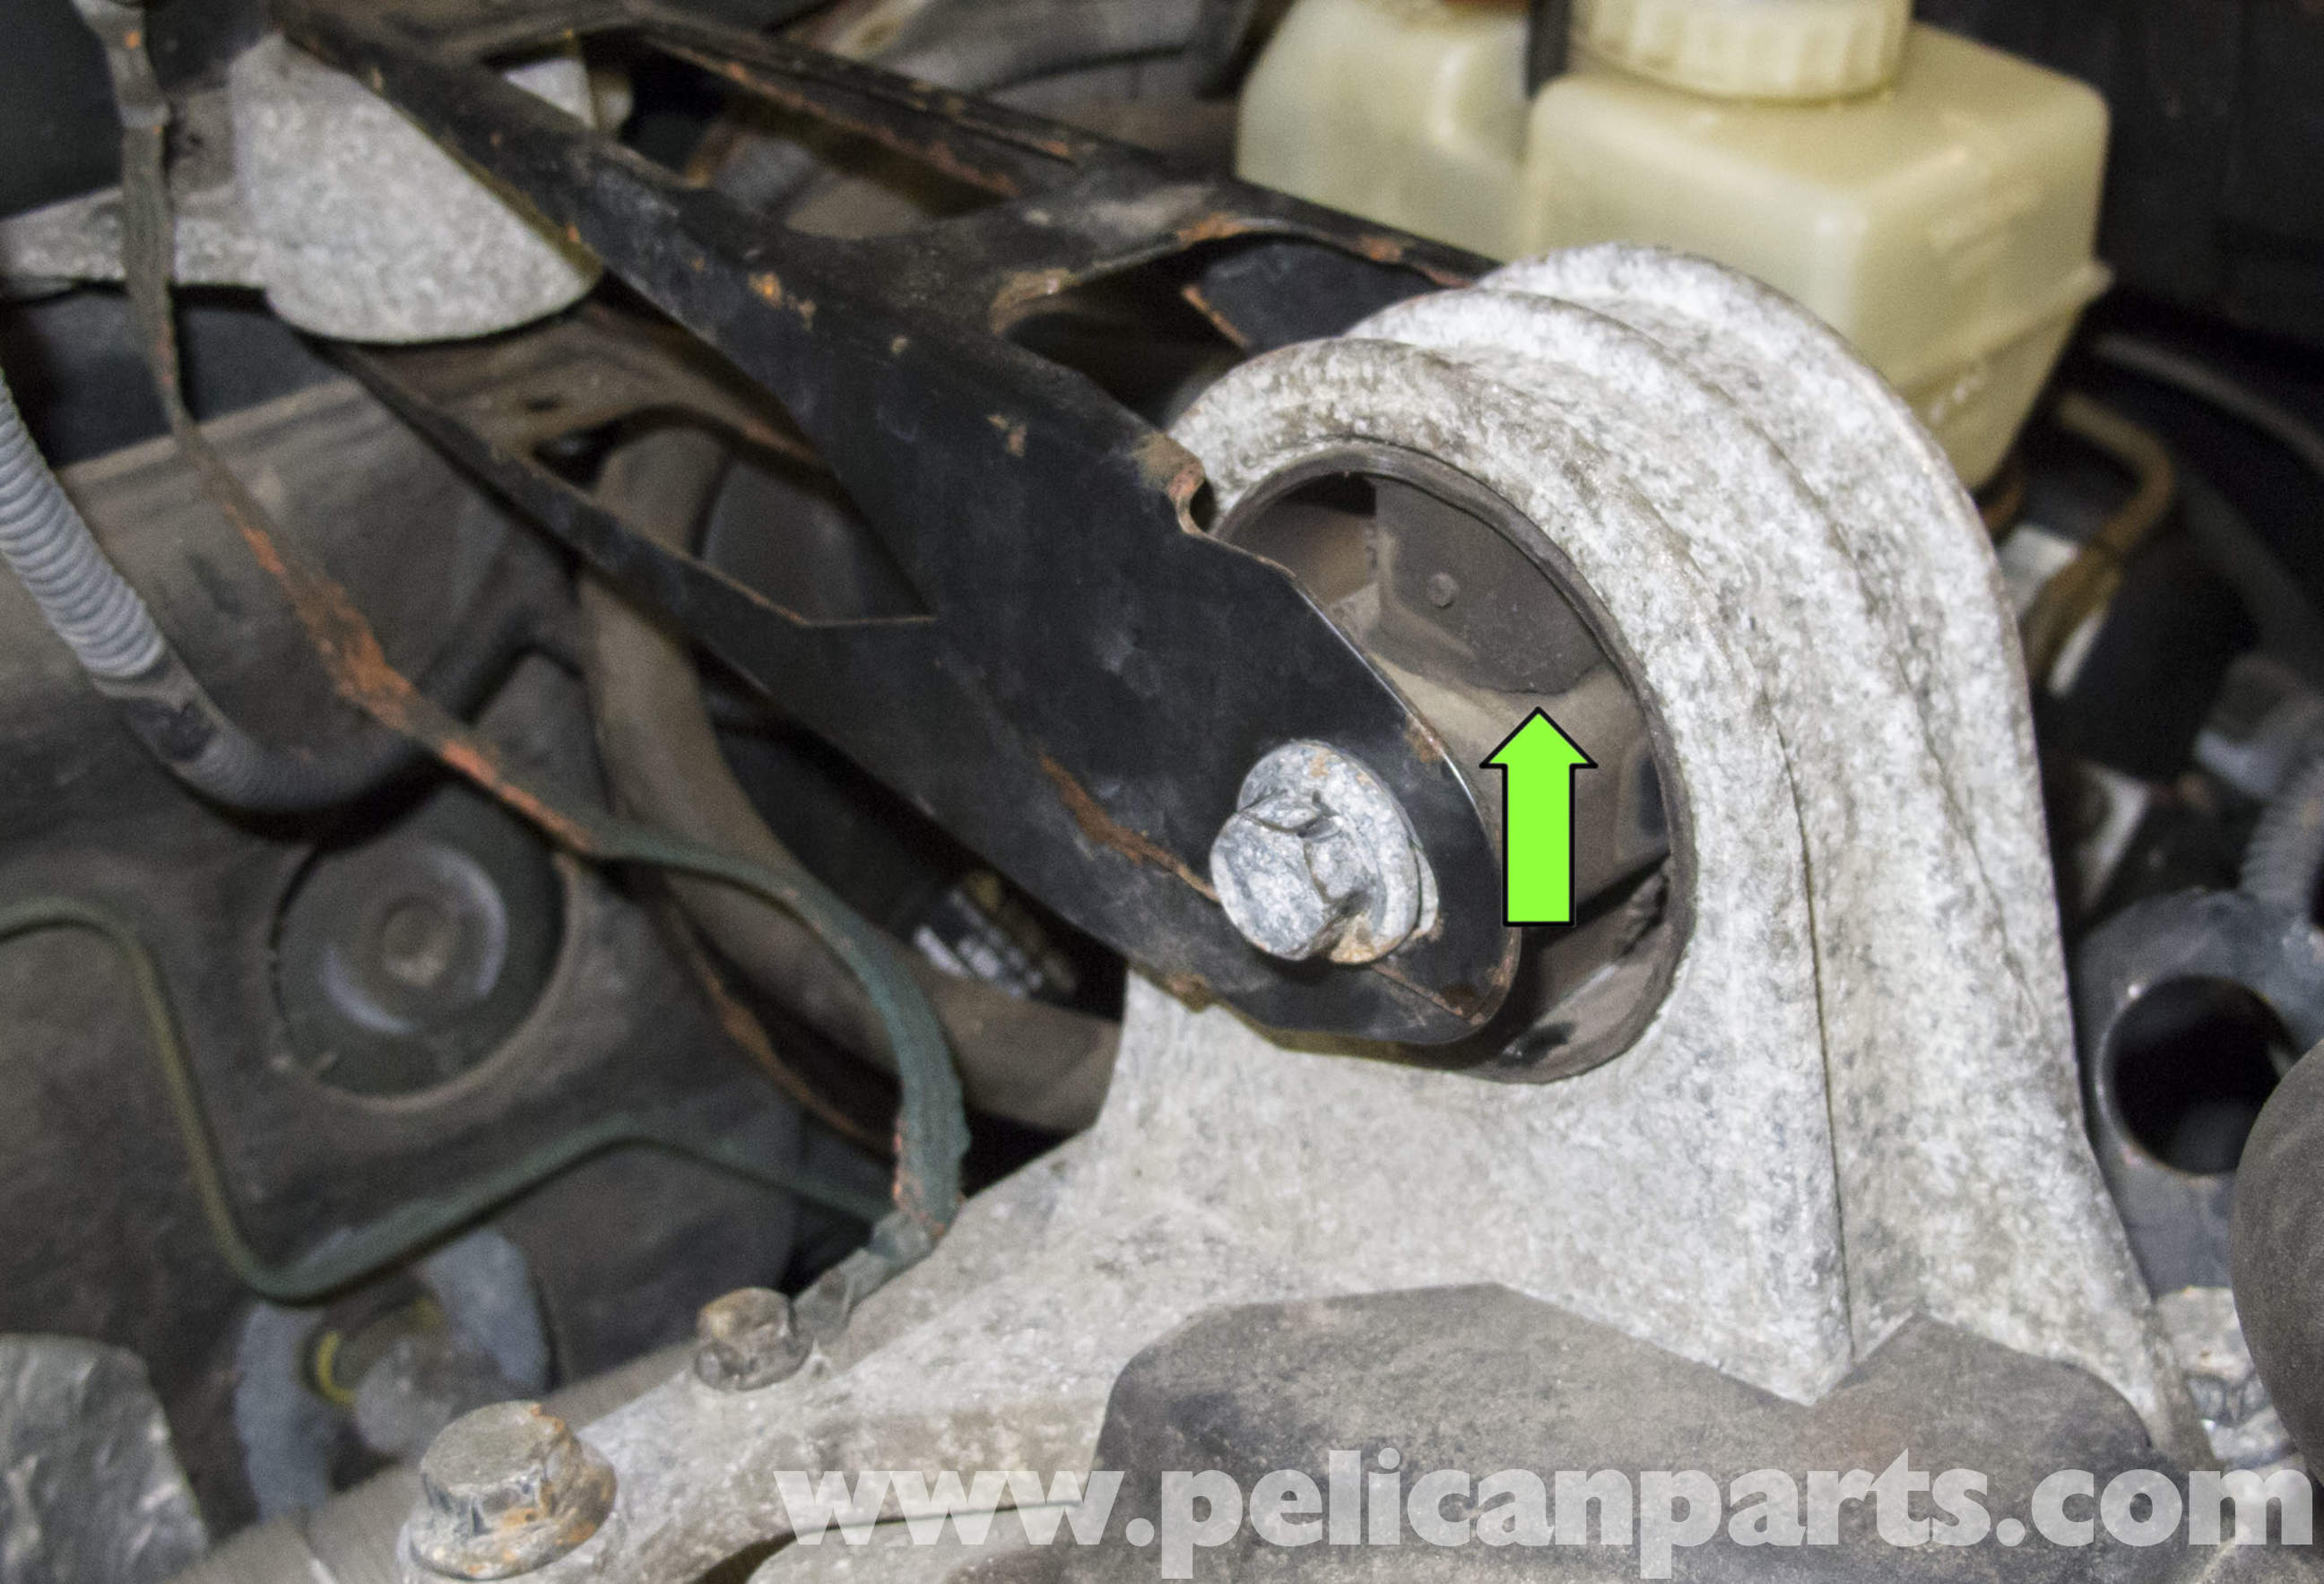 Volvo V70 Upper Engine Mount Replacement (1998-2007) - Pelican Parts DIY Maintenance Article